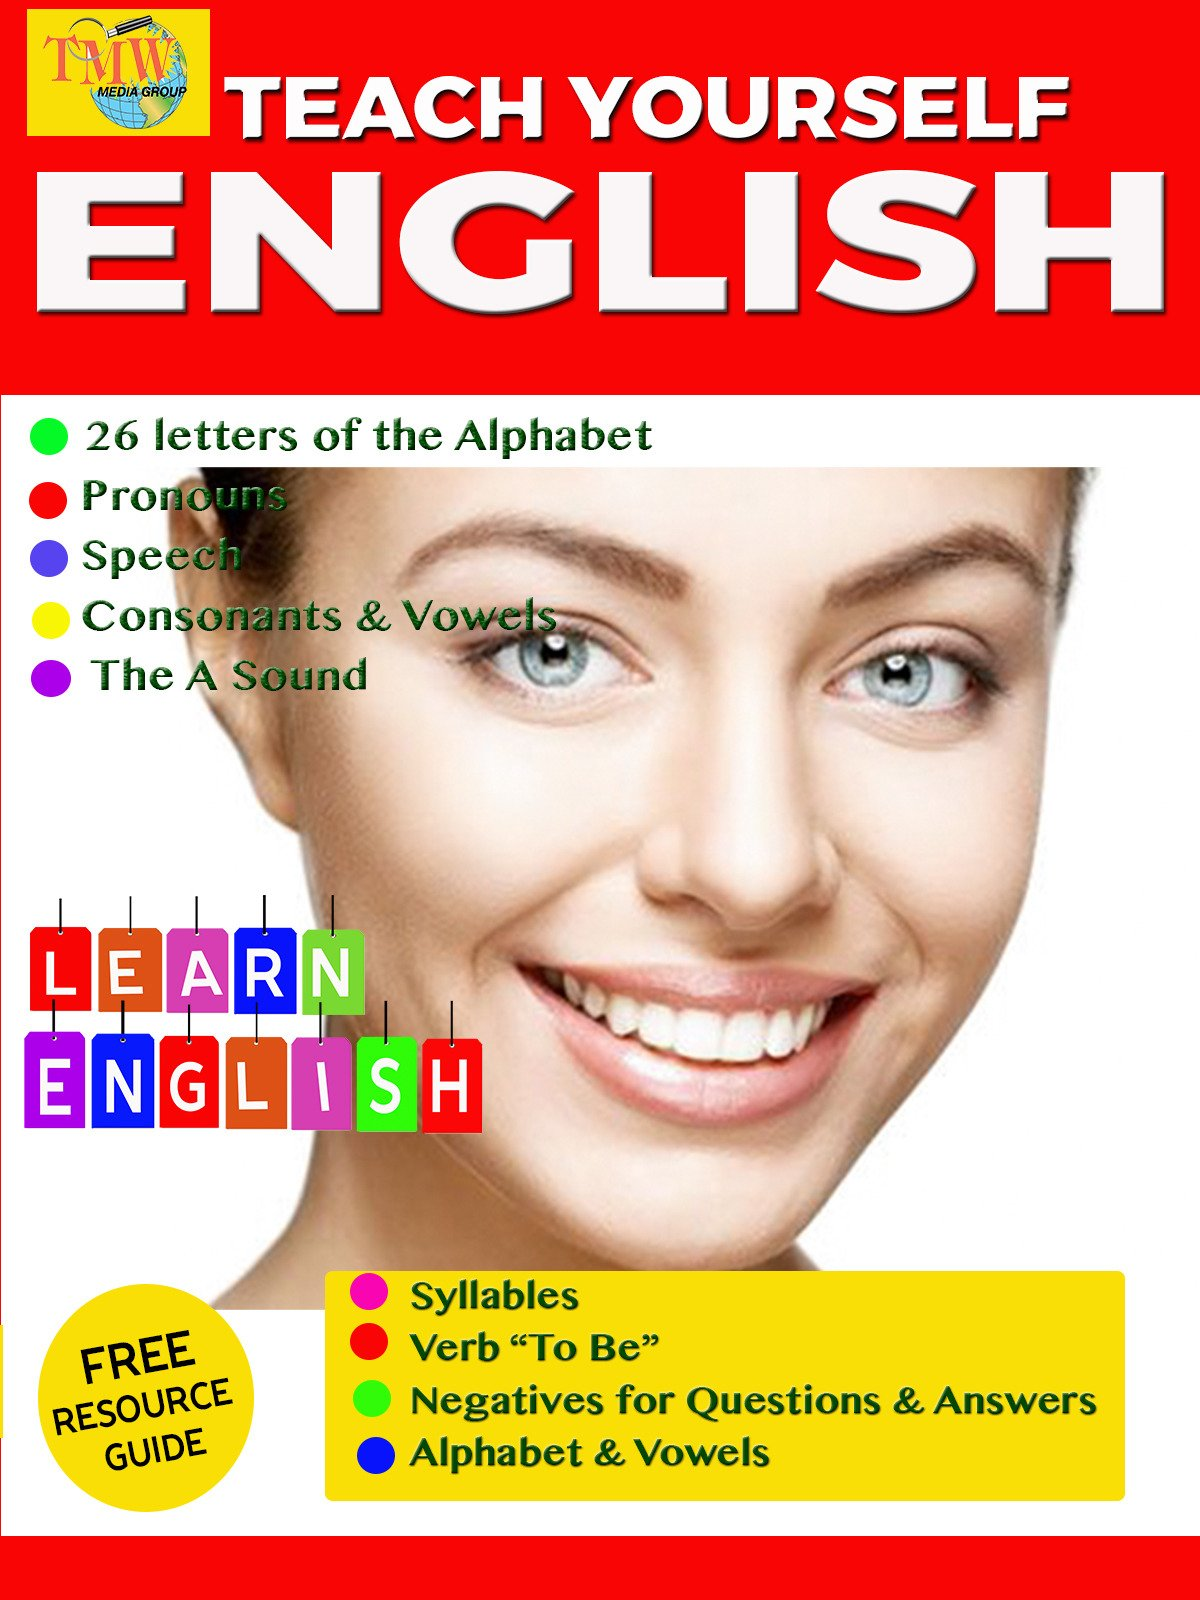 Teach Yourself English Part 1: The 26 letters of the Alphabet, Pronouns, Speech, Consonants & Vowels, the A Sound, Syllables, Verb To Be, Negatives for Questions & Answers